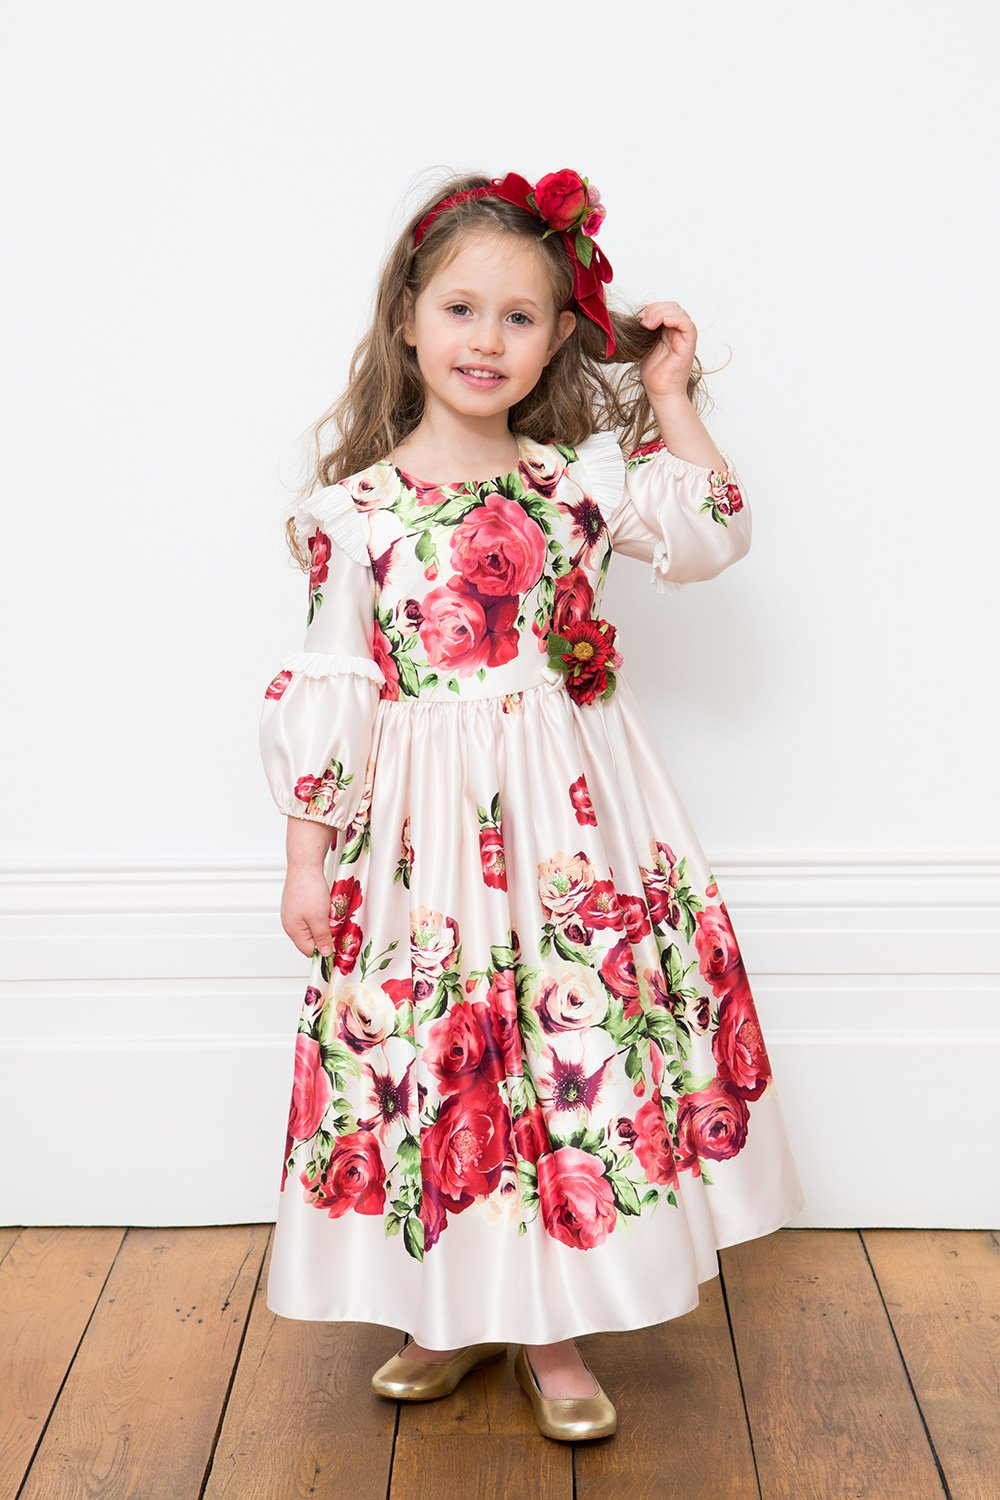 Creme und rote Rose Märchen Kleid - David Charles Childrens Wear